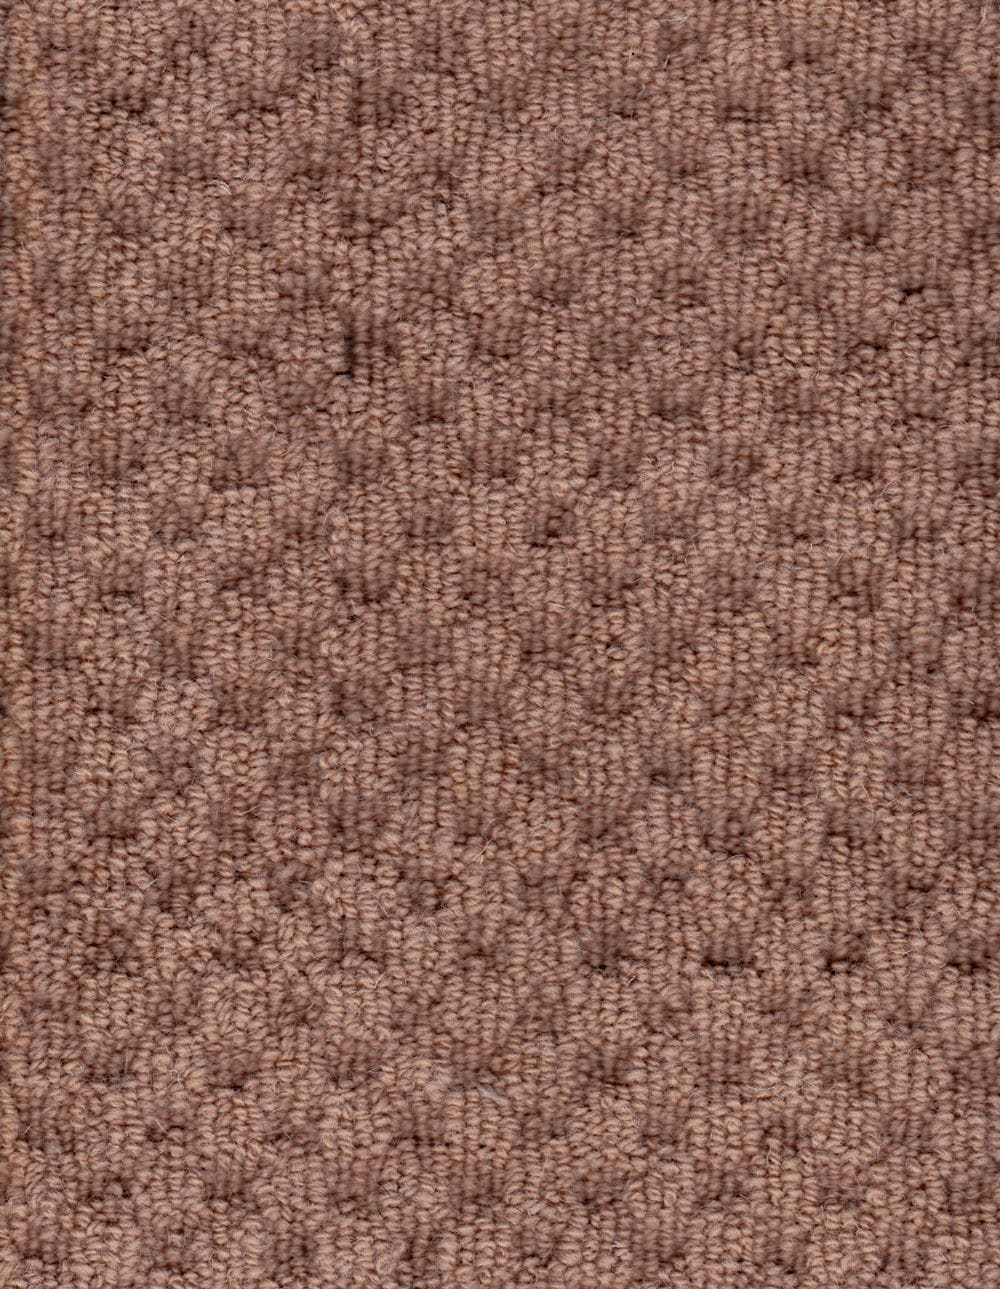 Boat floor covering - Camel Textured